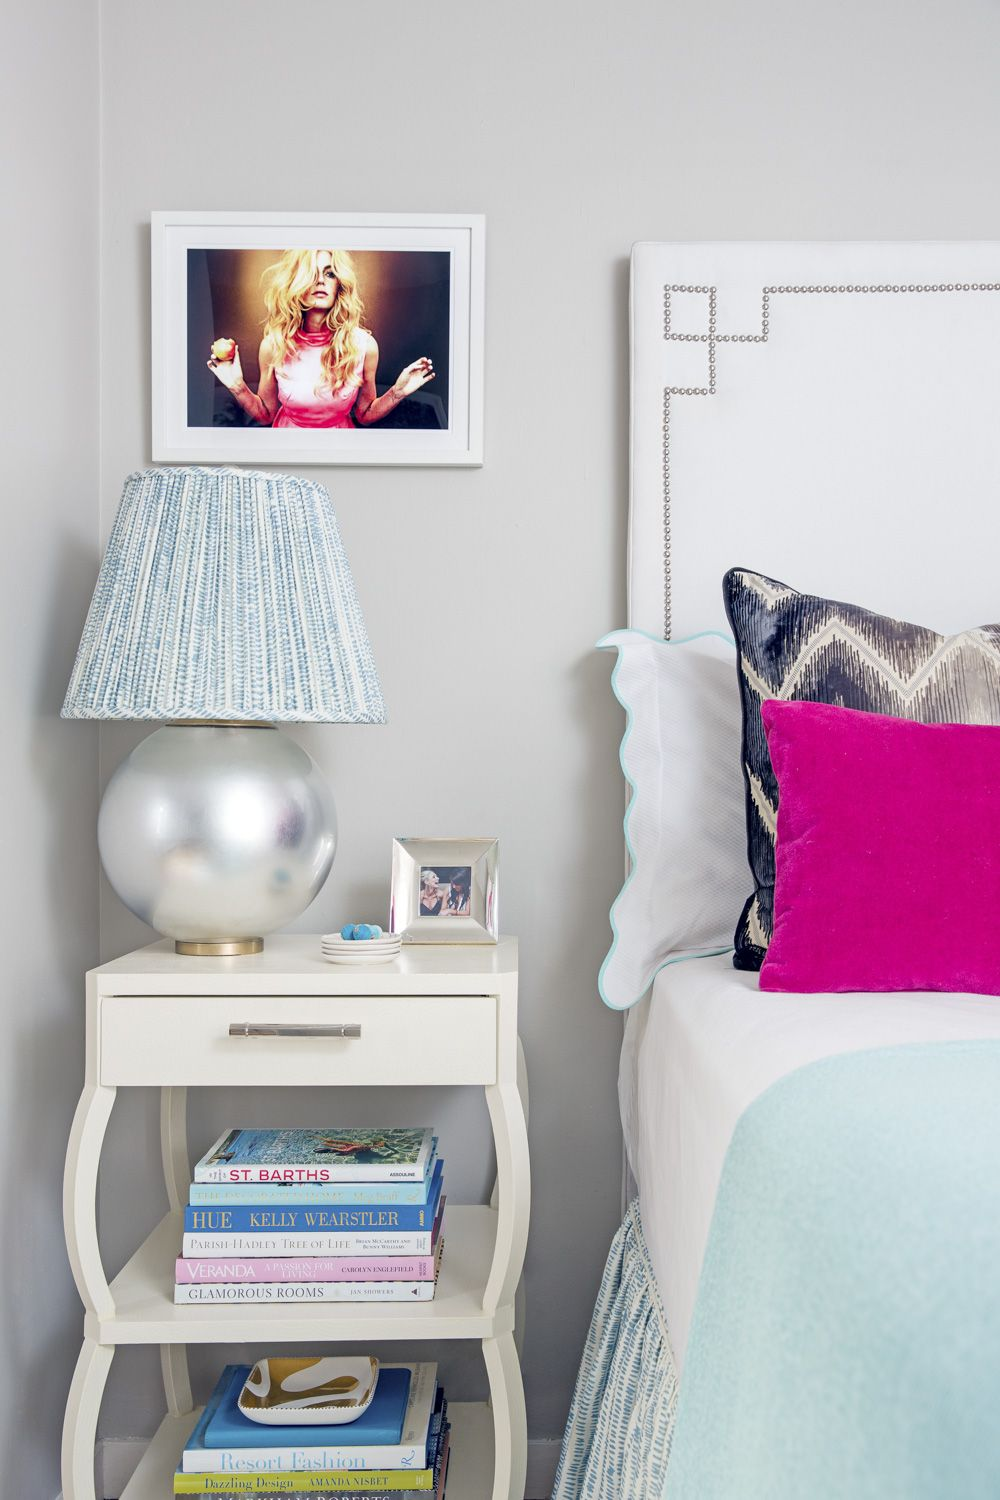 A Blogger Shares Her Top Tips For Decorating A Rental